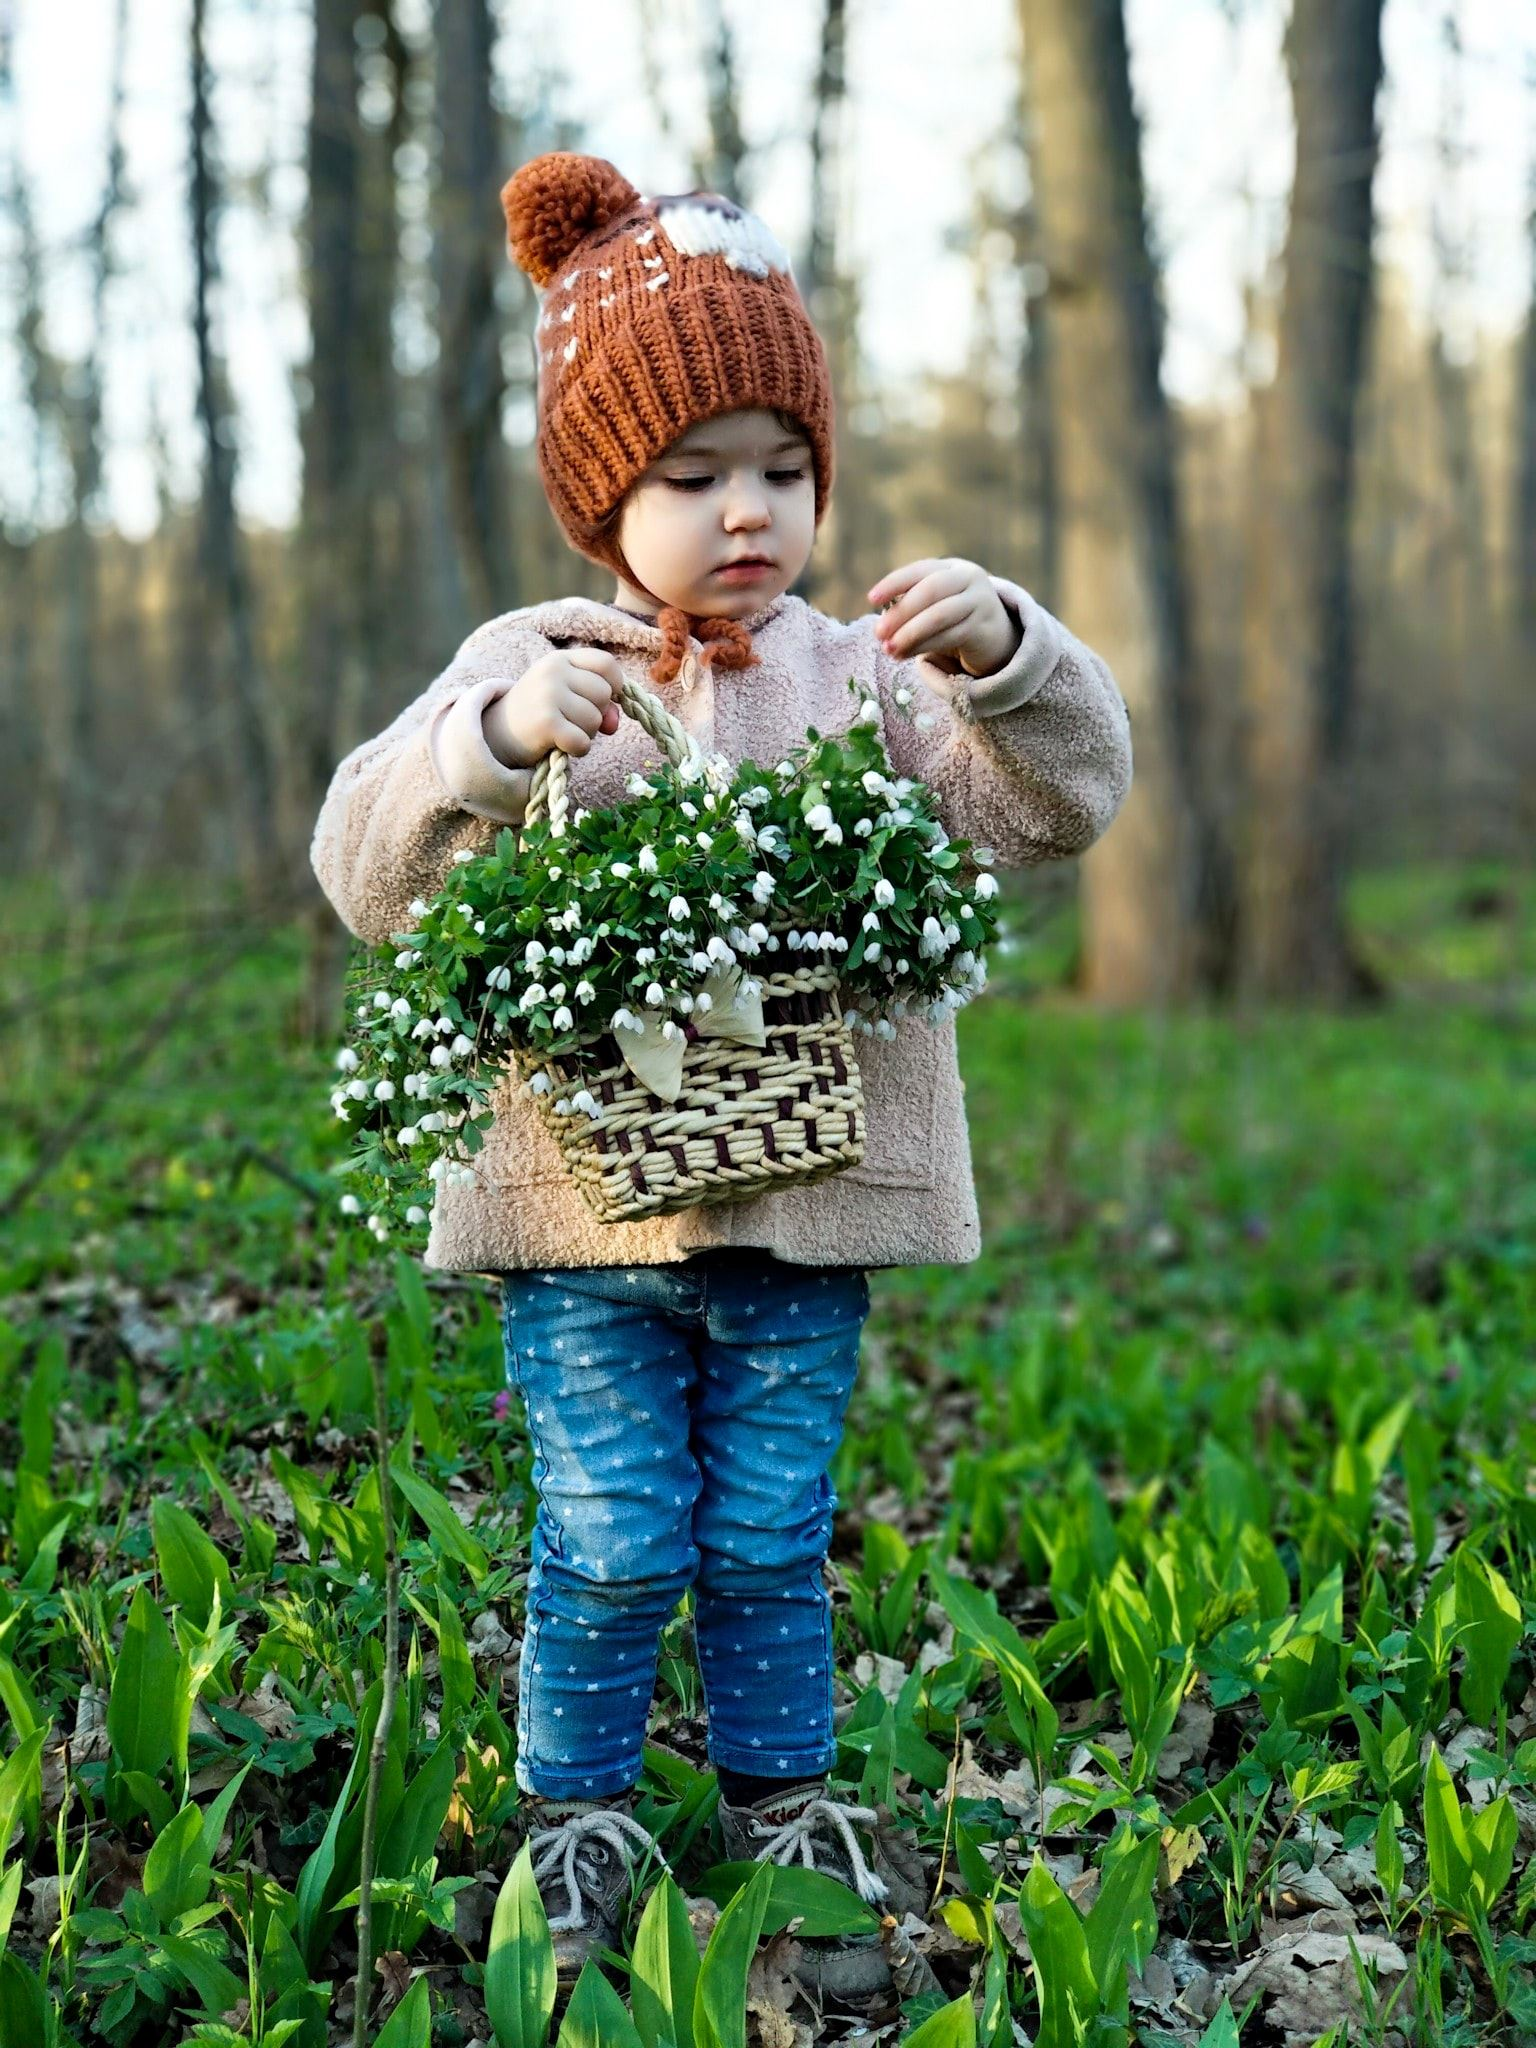 young girl in green field holding a basket of flowers